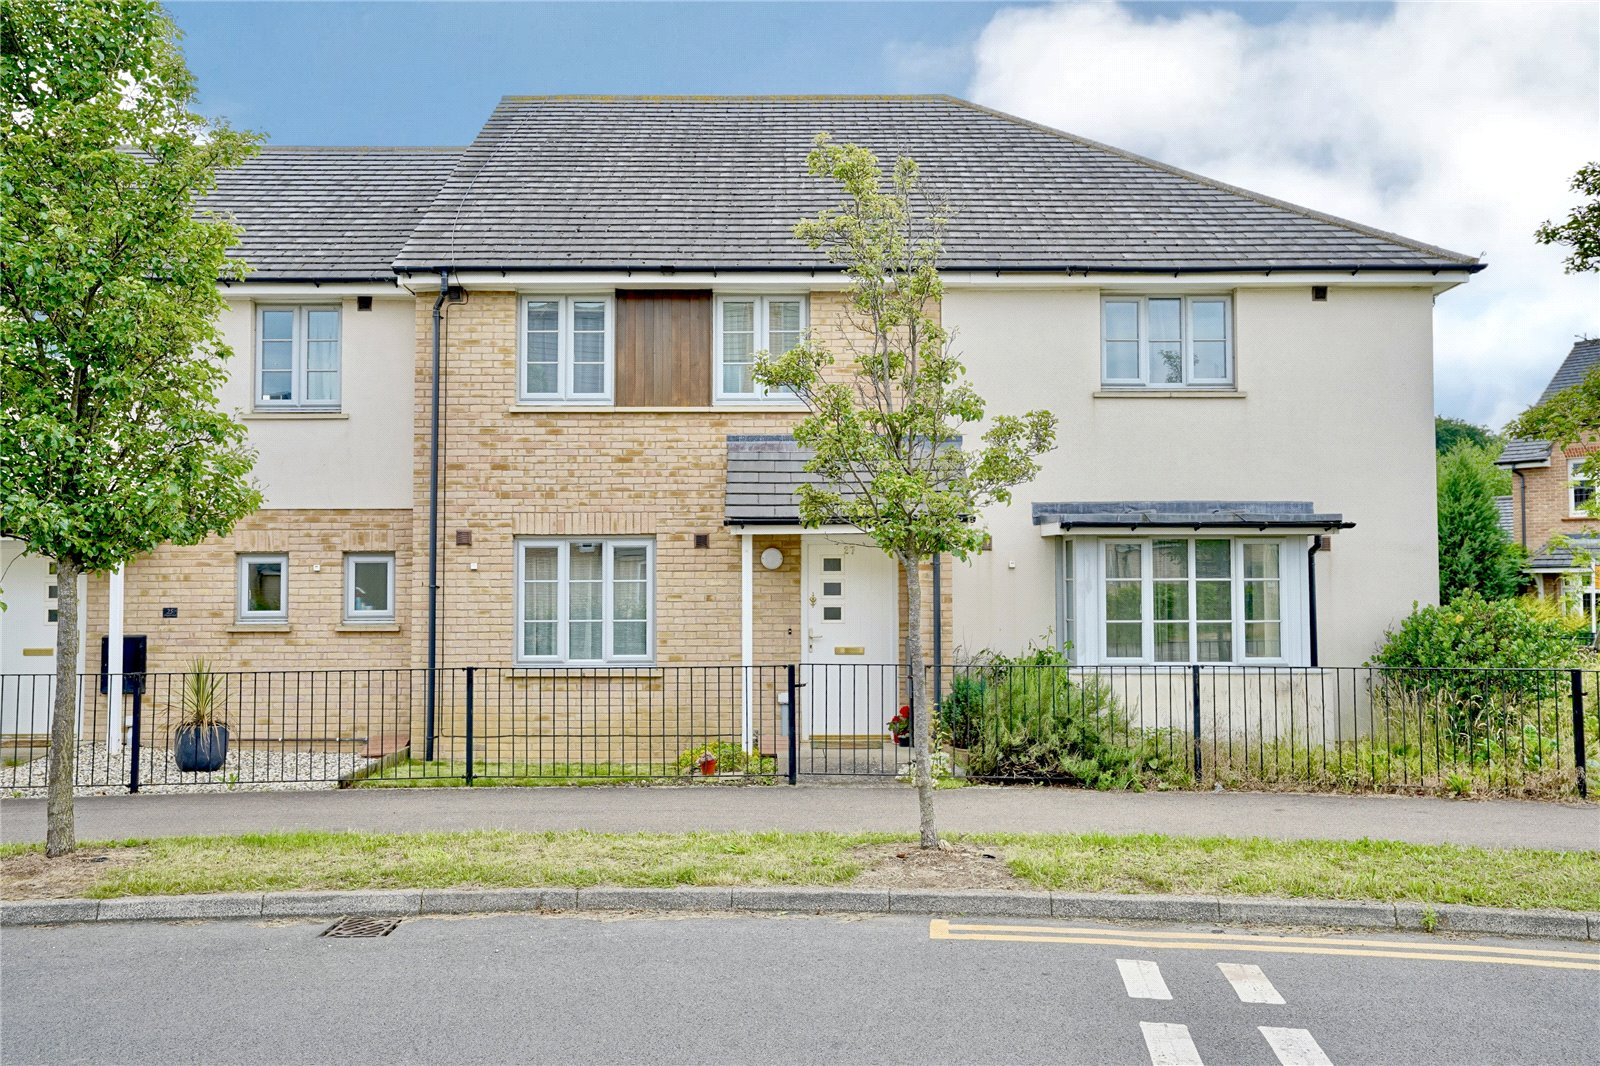 2 bed house for sale in Hogsden Leys, St. Neots, PE19